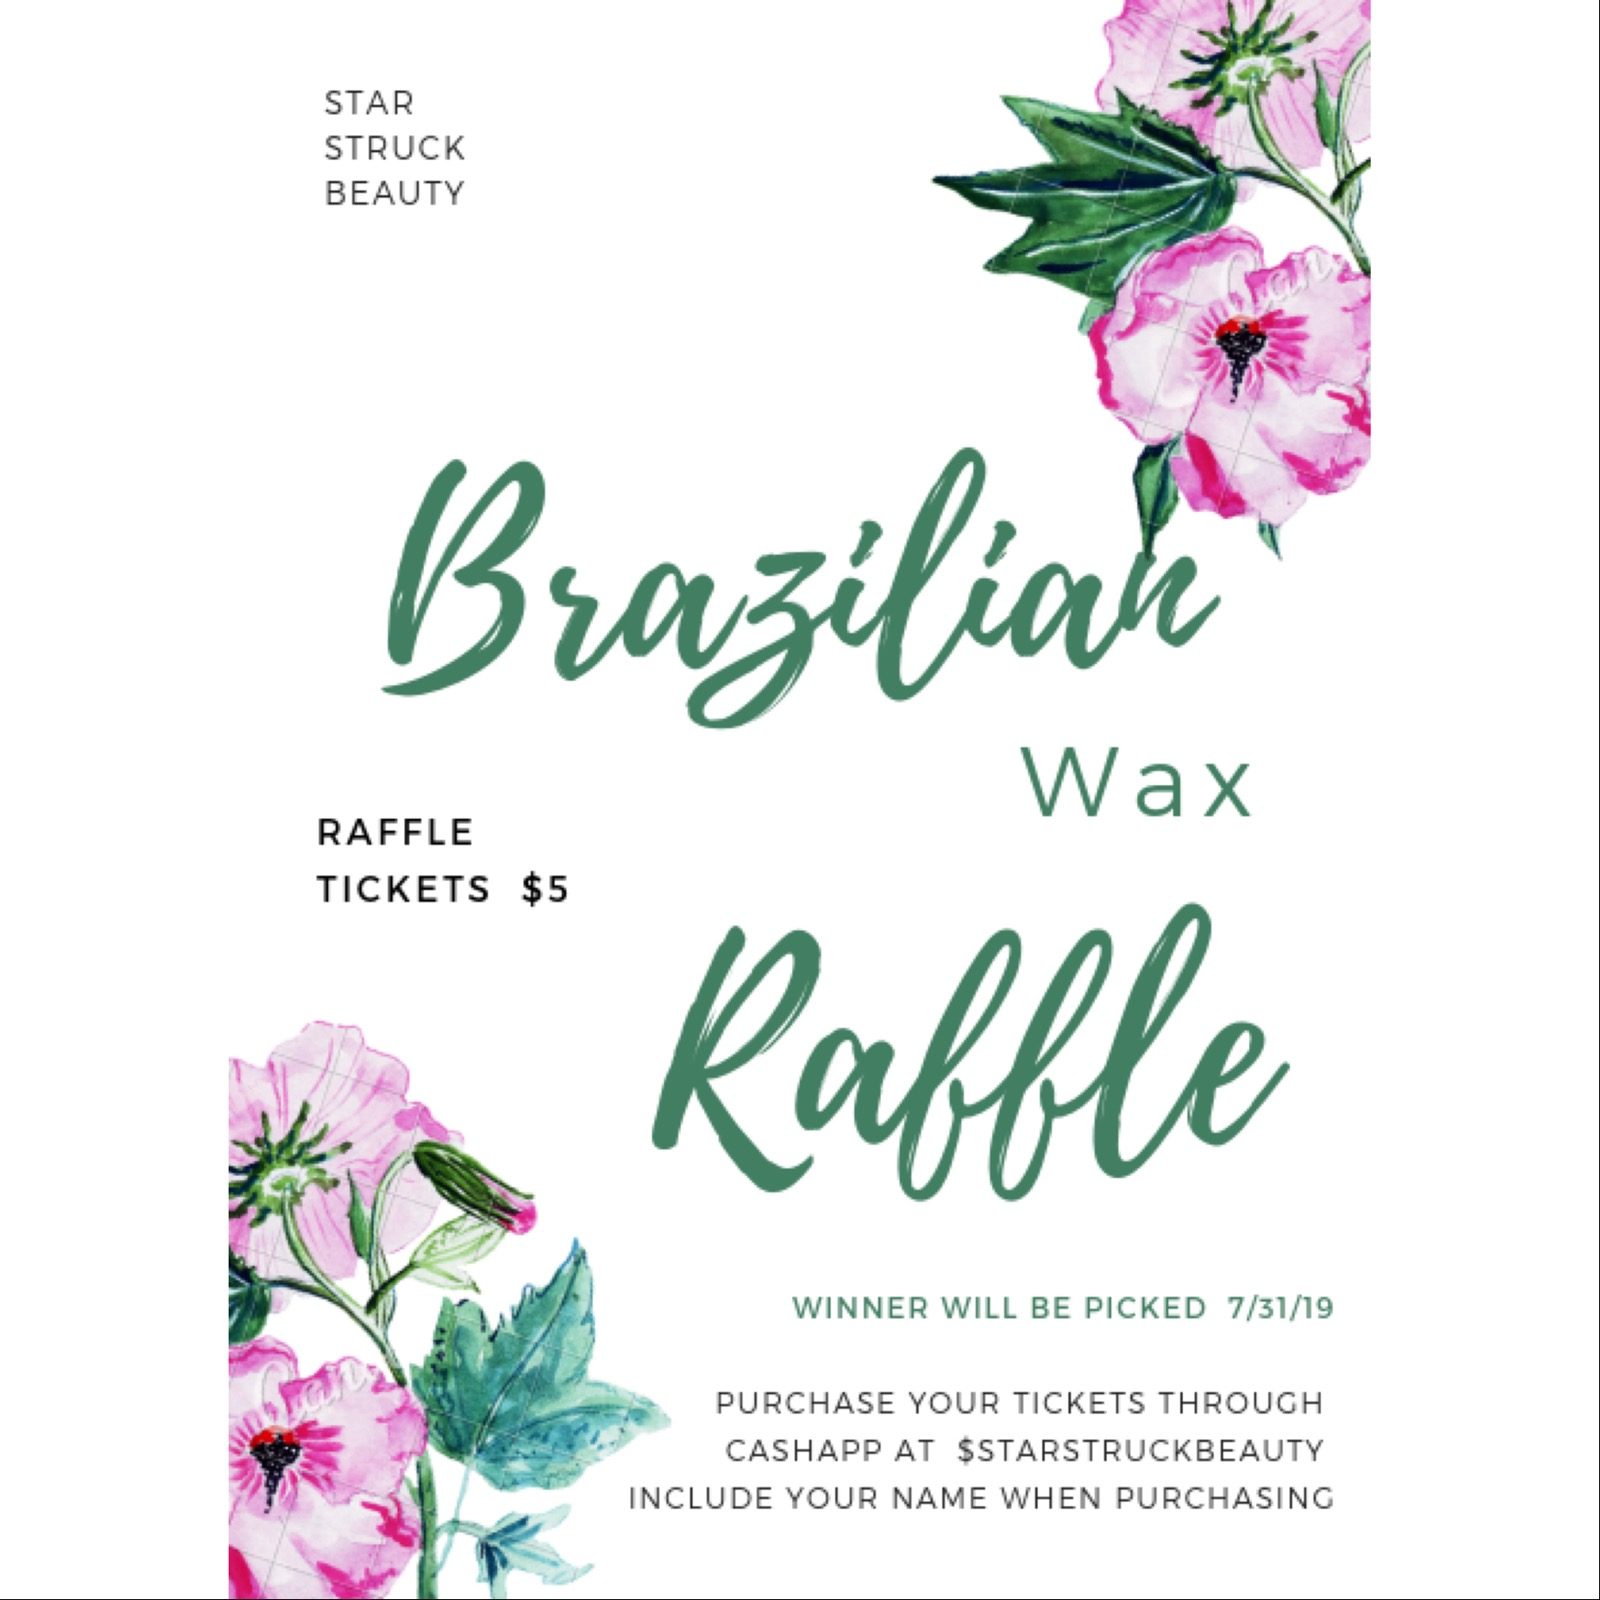 Help us welcome our new partnership with Star Struck Beauty with a FREE Brazilian Wax Raffle! In order to enter, please follow instructions on flyer!